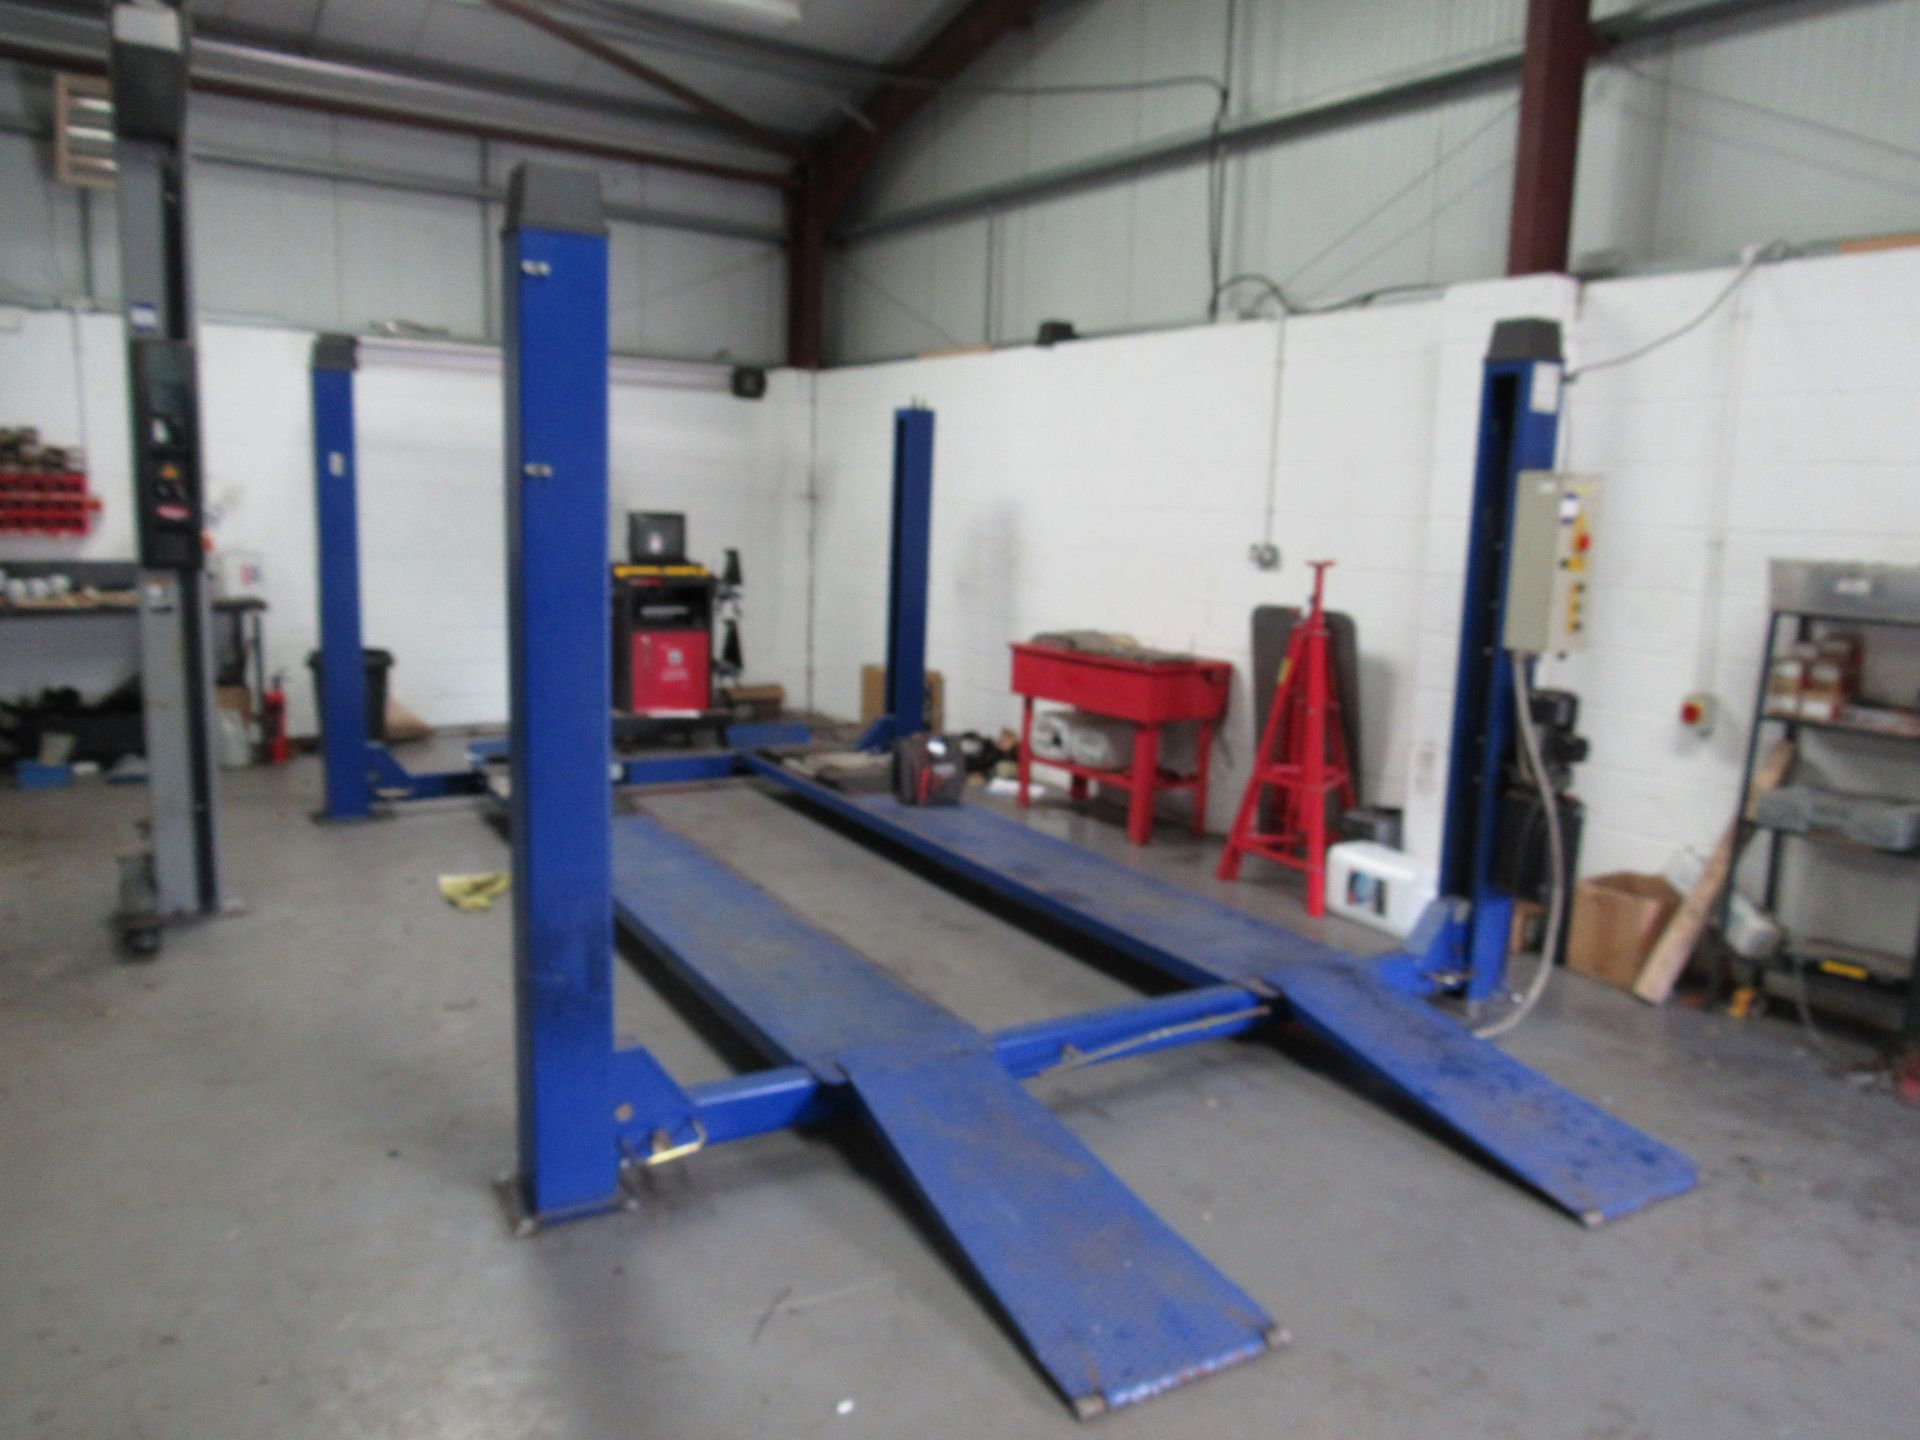 Lot 42 - OMA 522AL 4 Post Vehicle Lift 4000kg Lifting Capacity, Serial Number A025931, Year 2005 (Located